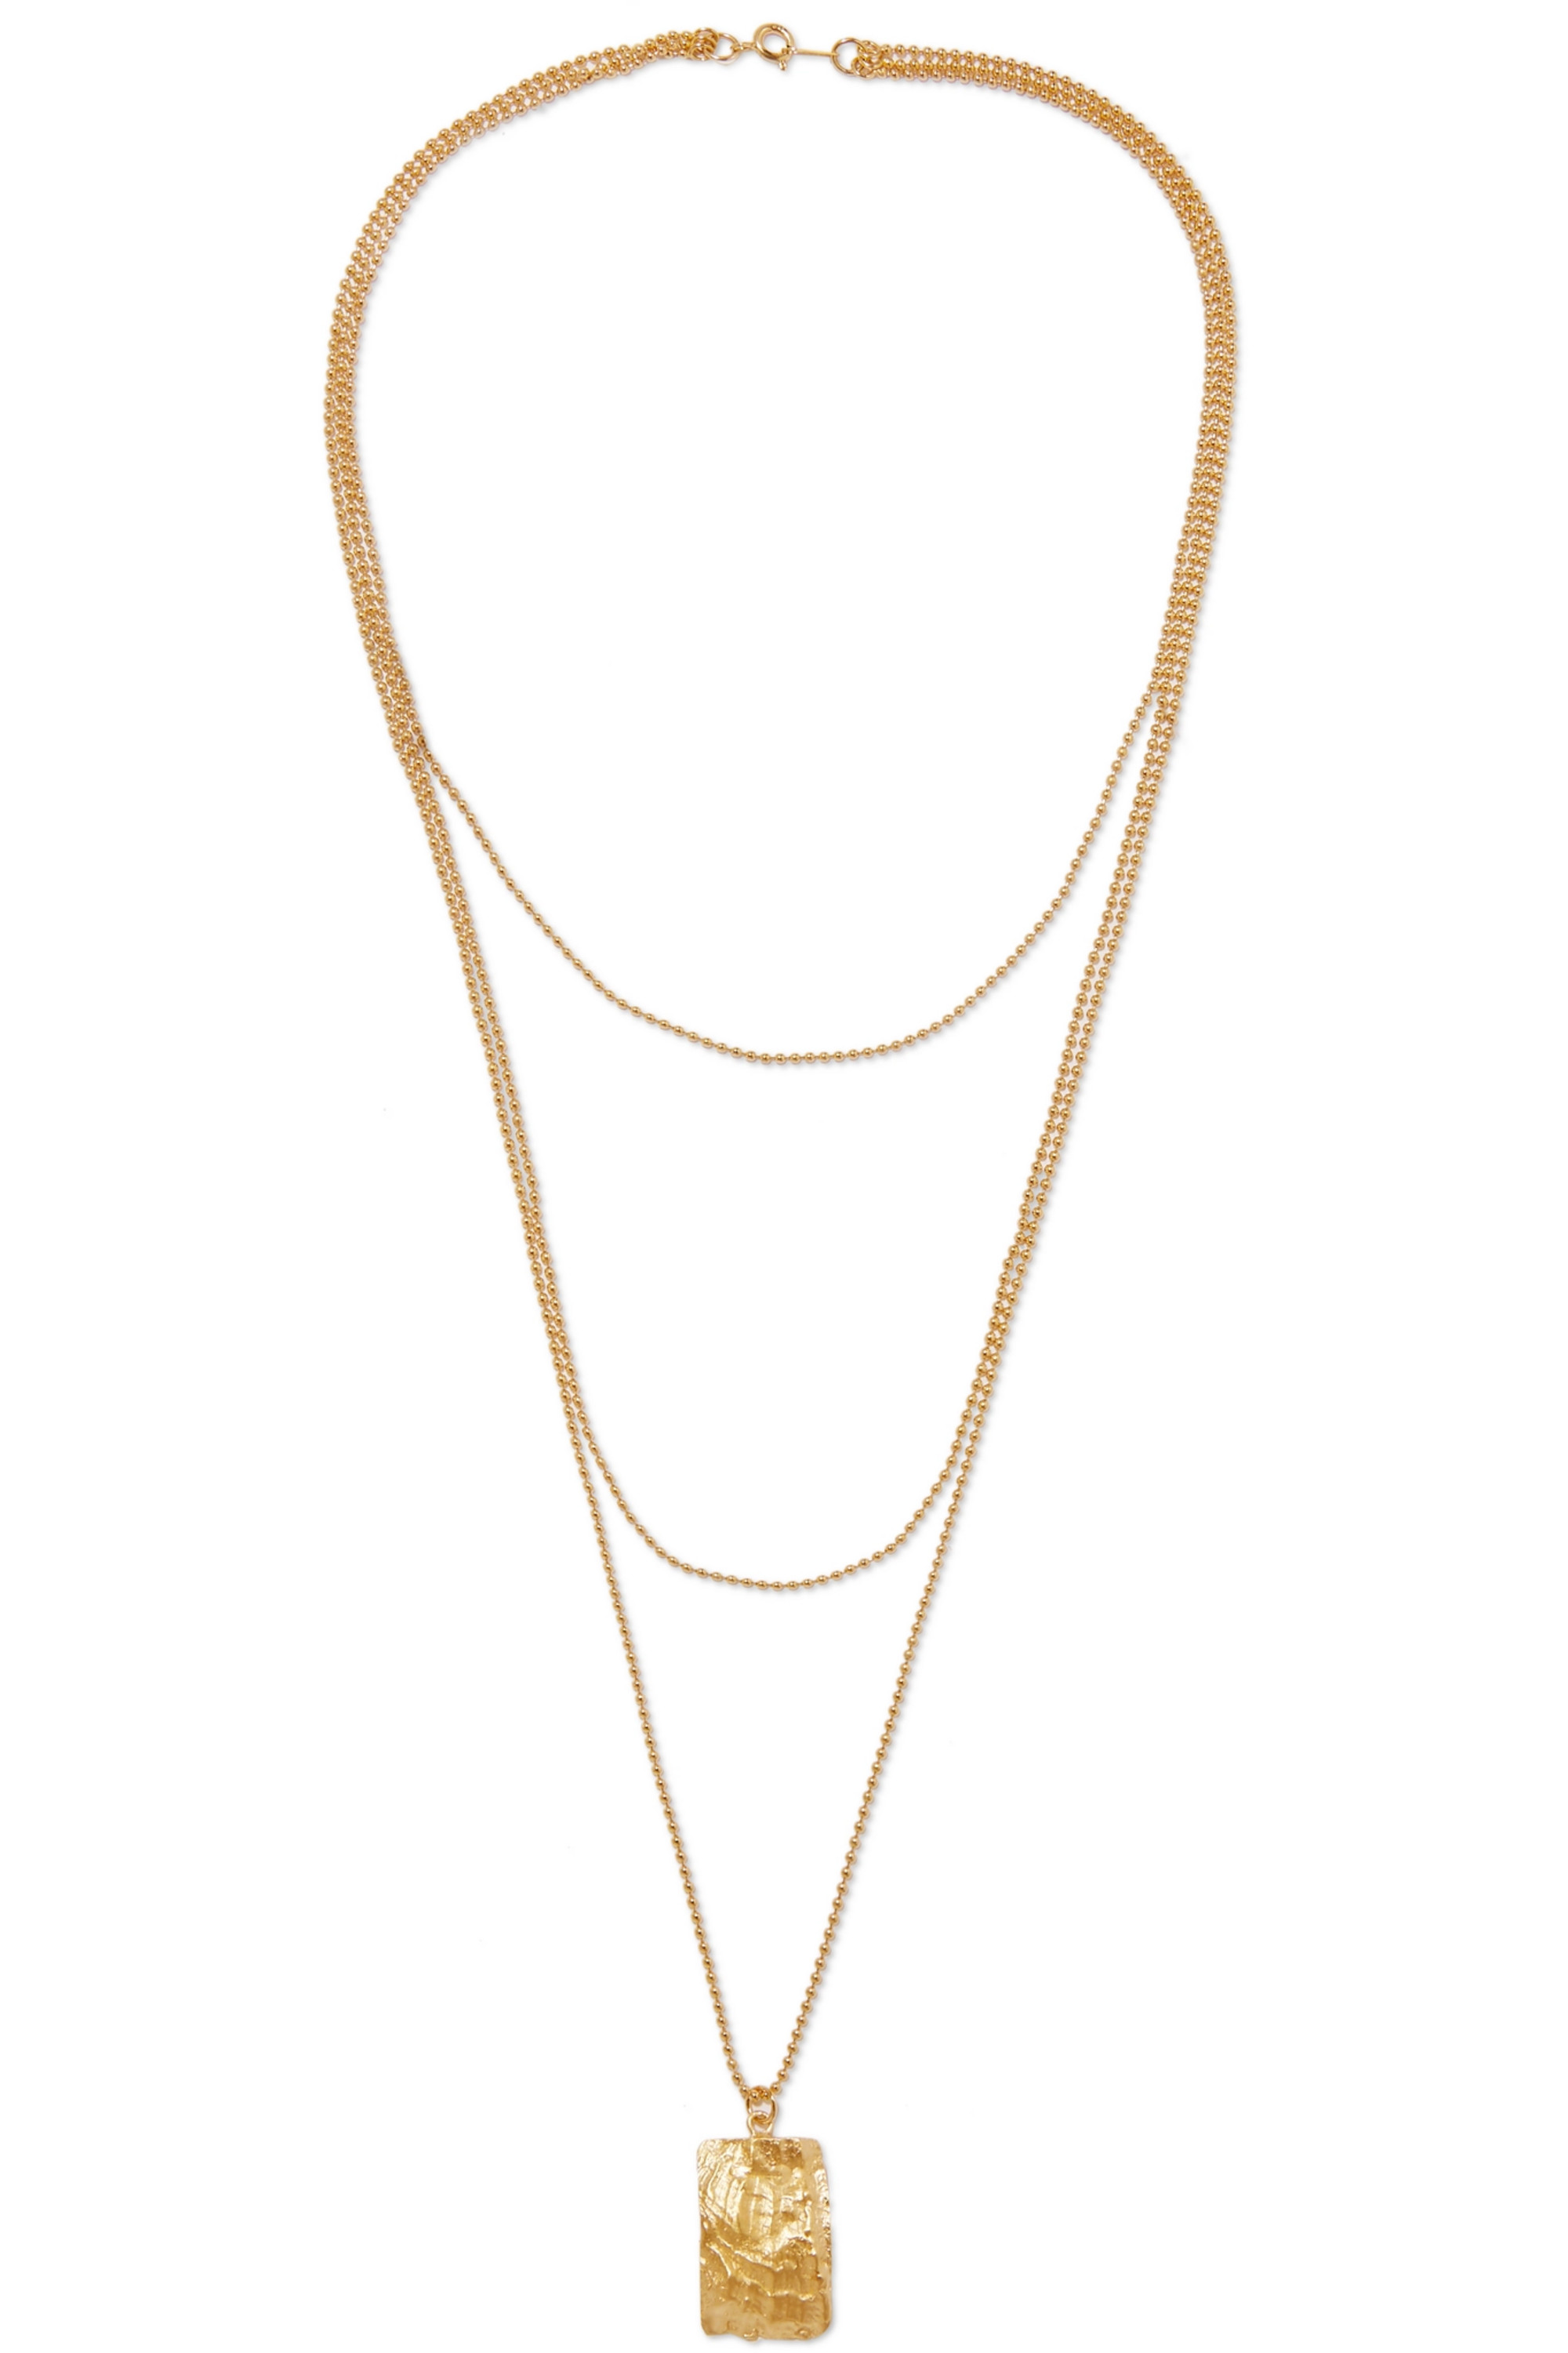 1064 Studio Gold-plated necklace